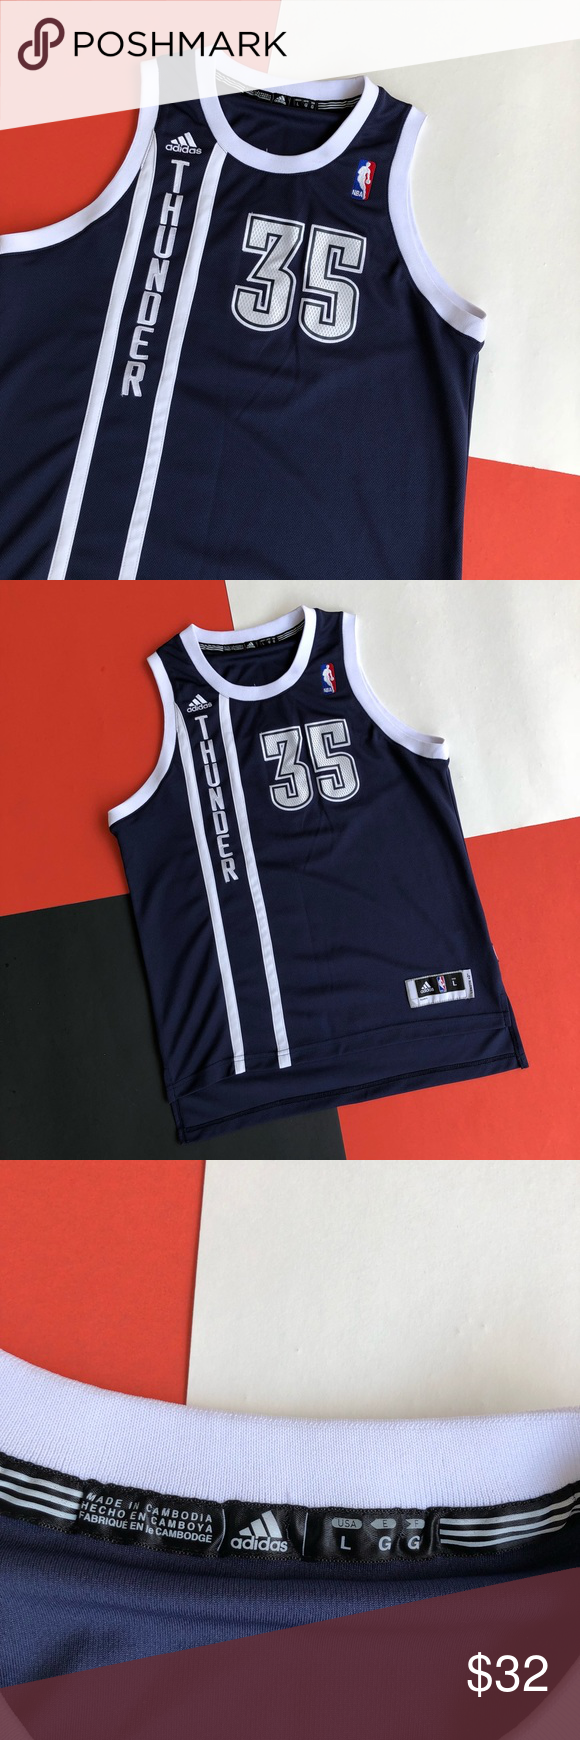 sports shoes f2a1a d44bc ADIDAS KEVIN DURANT KD #35 ALTERNATE OKC JERSEY Throwback ...